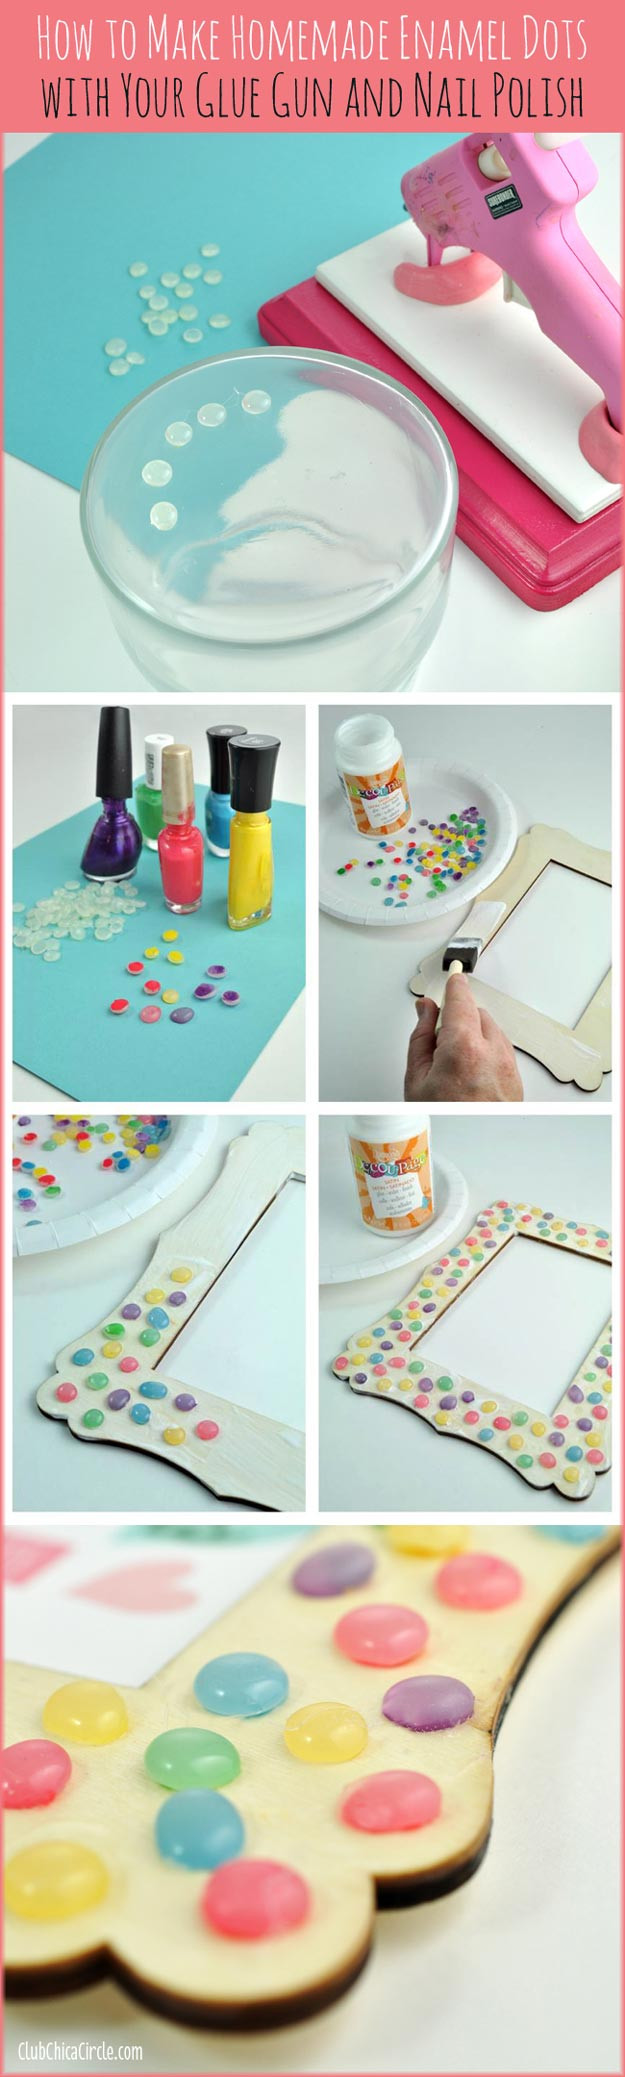 Best ideas about Homemade Craft Ideas For Adults . Save or Pin 31 Incredibly Cool DIY Crafts Using Nail Polish Now.